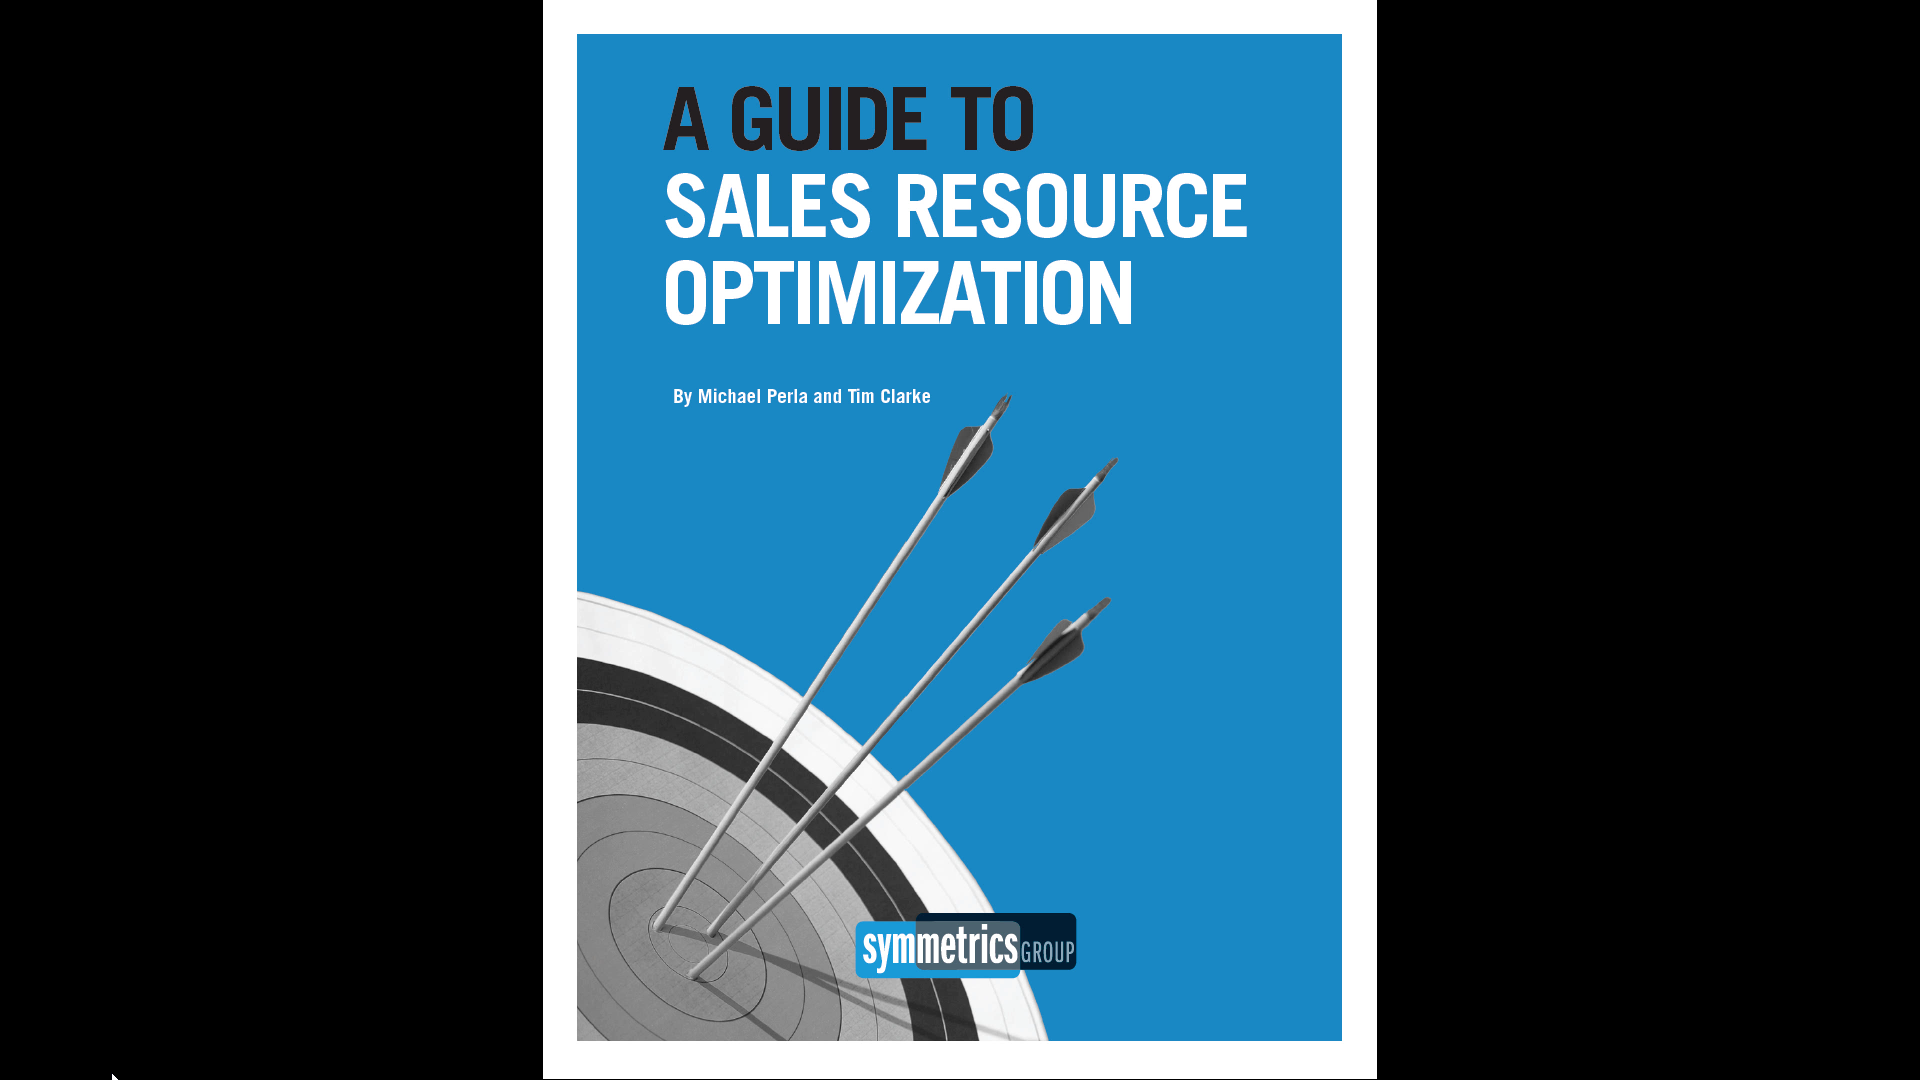 Guide to Sales Resource Optimization by Symmetrics Group